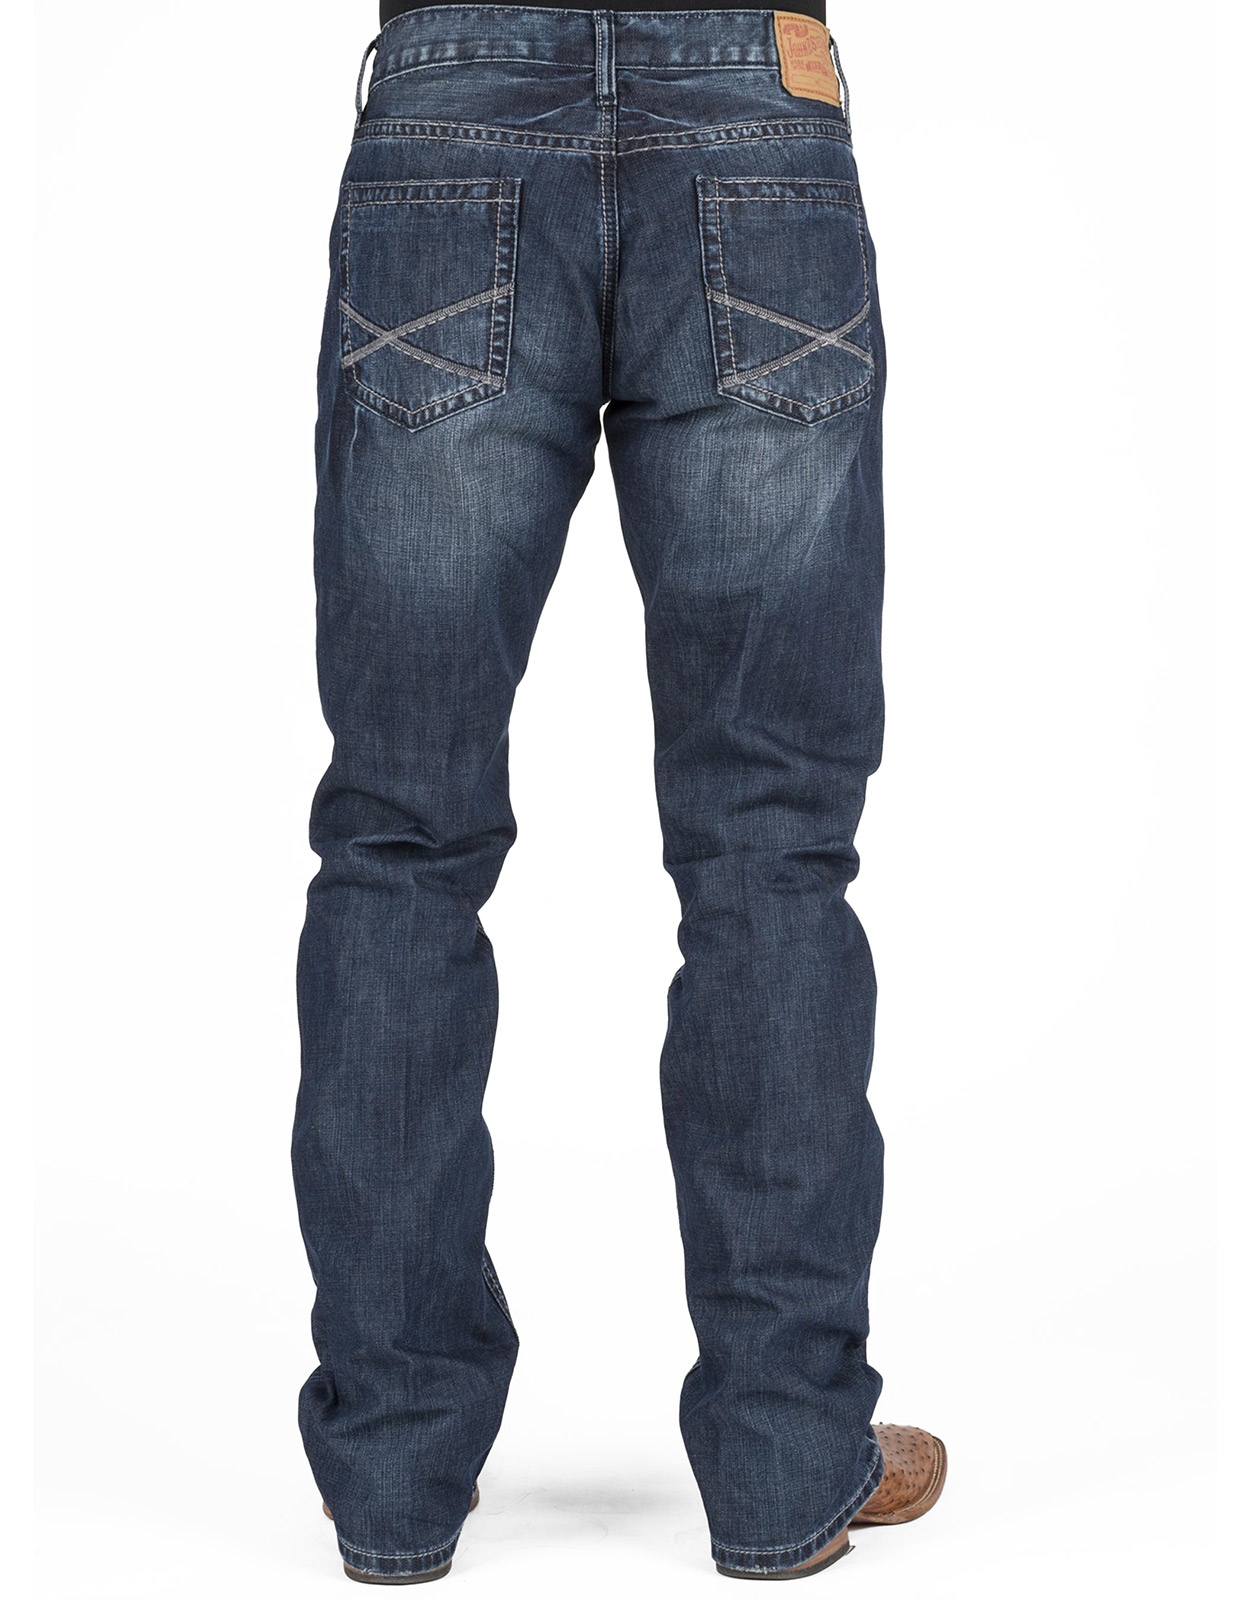 Stetson Menu0026#39;s Low Rise Relaxed Fit Boot Cut Jeans - Dark Wash